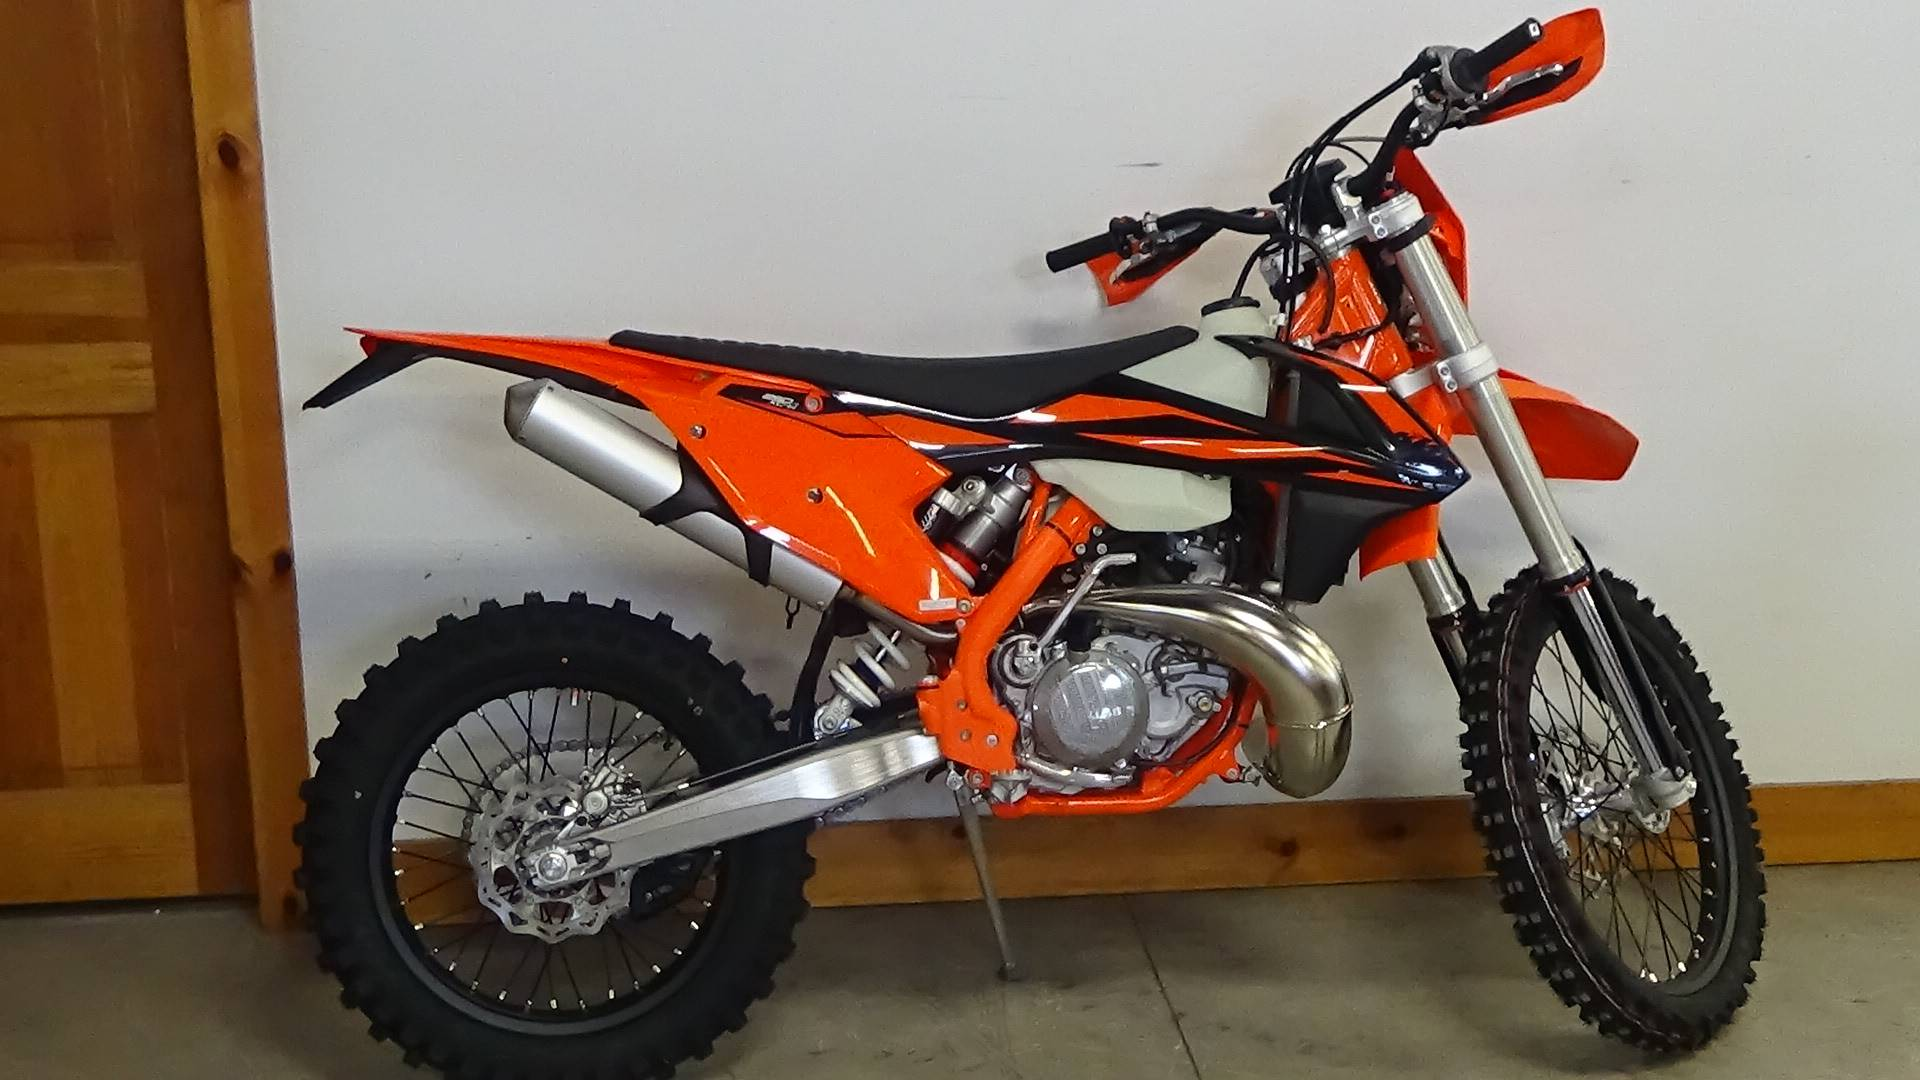 New 2019 KTM 250 XC-W TPI Motorcycles in Adams, MA   Stock Number